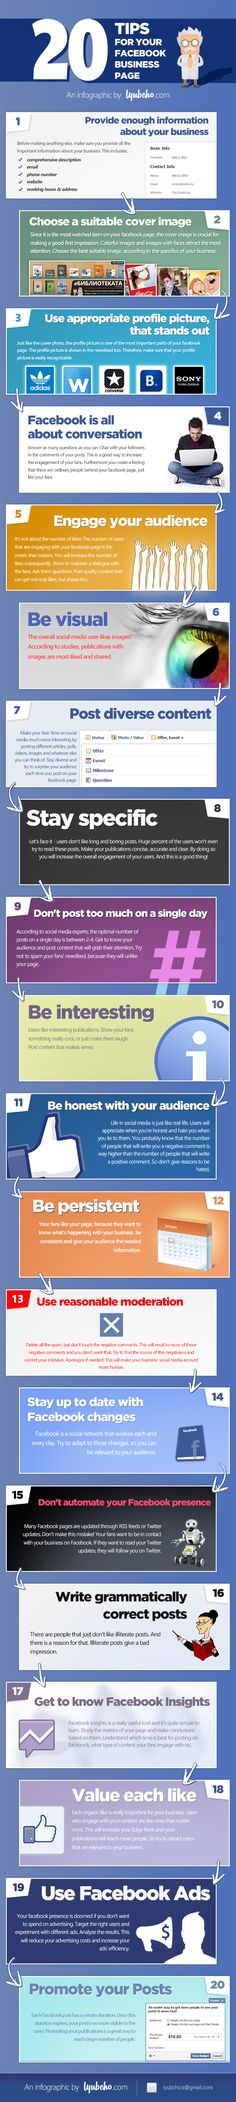 20 Tips for your Facebook Business Page / INFOGRAPHIC